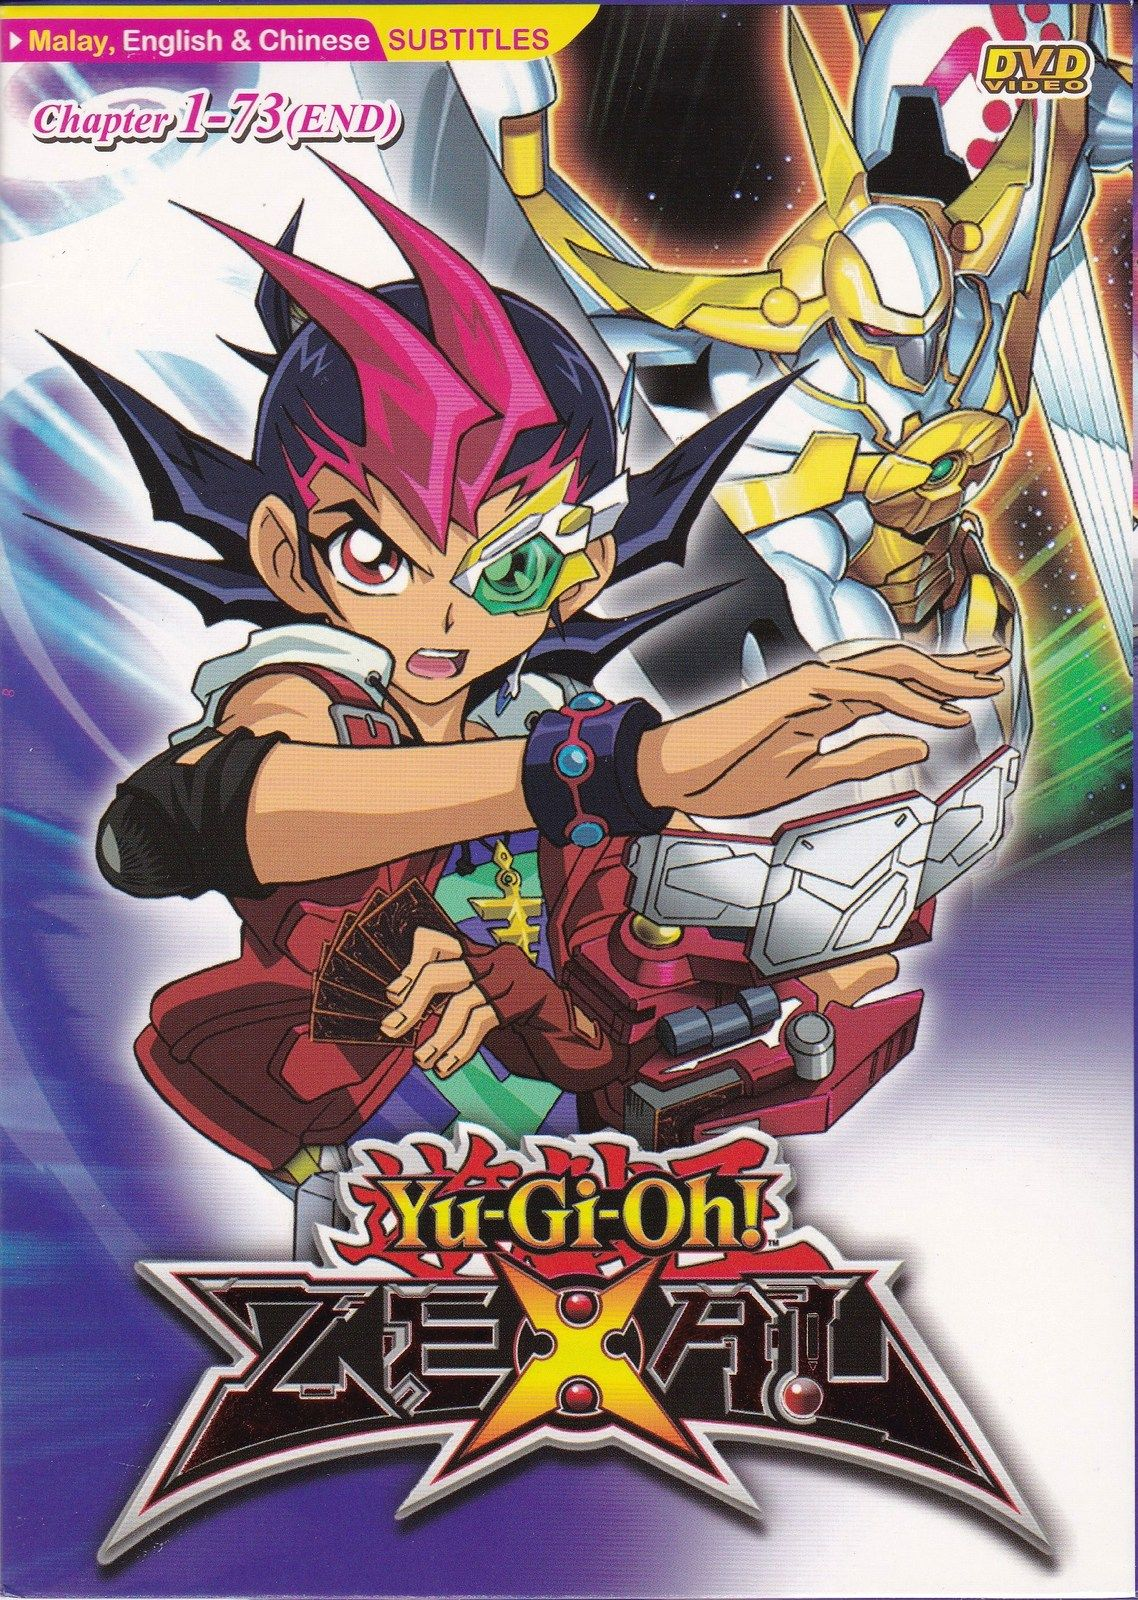 Anime yu gi oh zexal vol 1 73end complete tv series region all free shipping